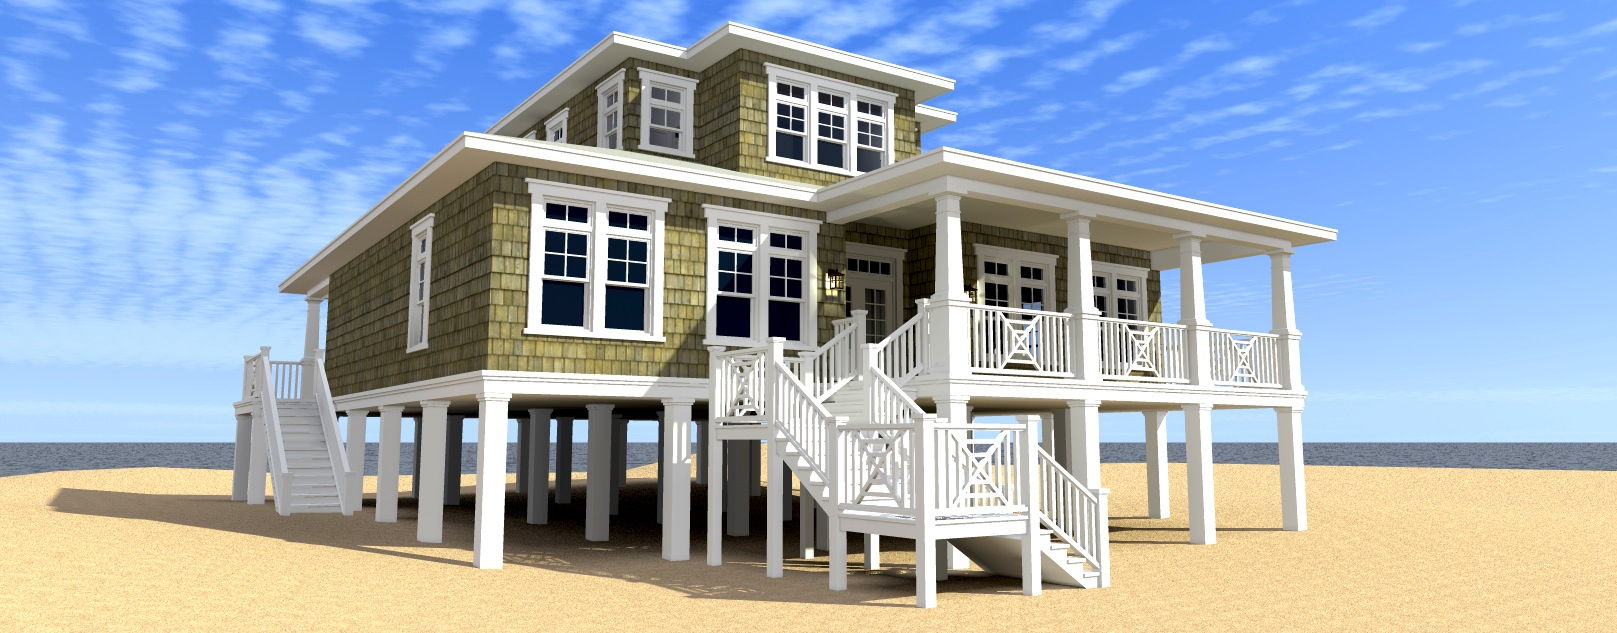 Scuppers house plan tyree house plans for 3 bedroom beach house designs